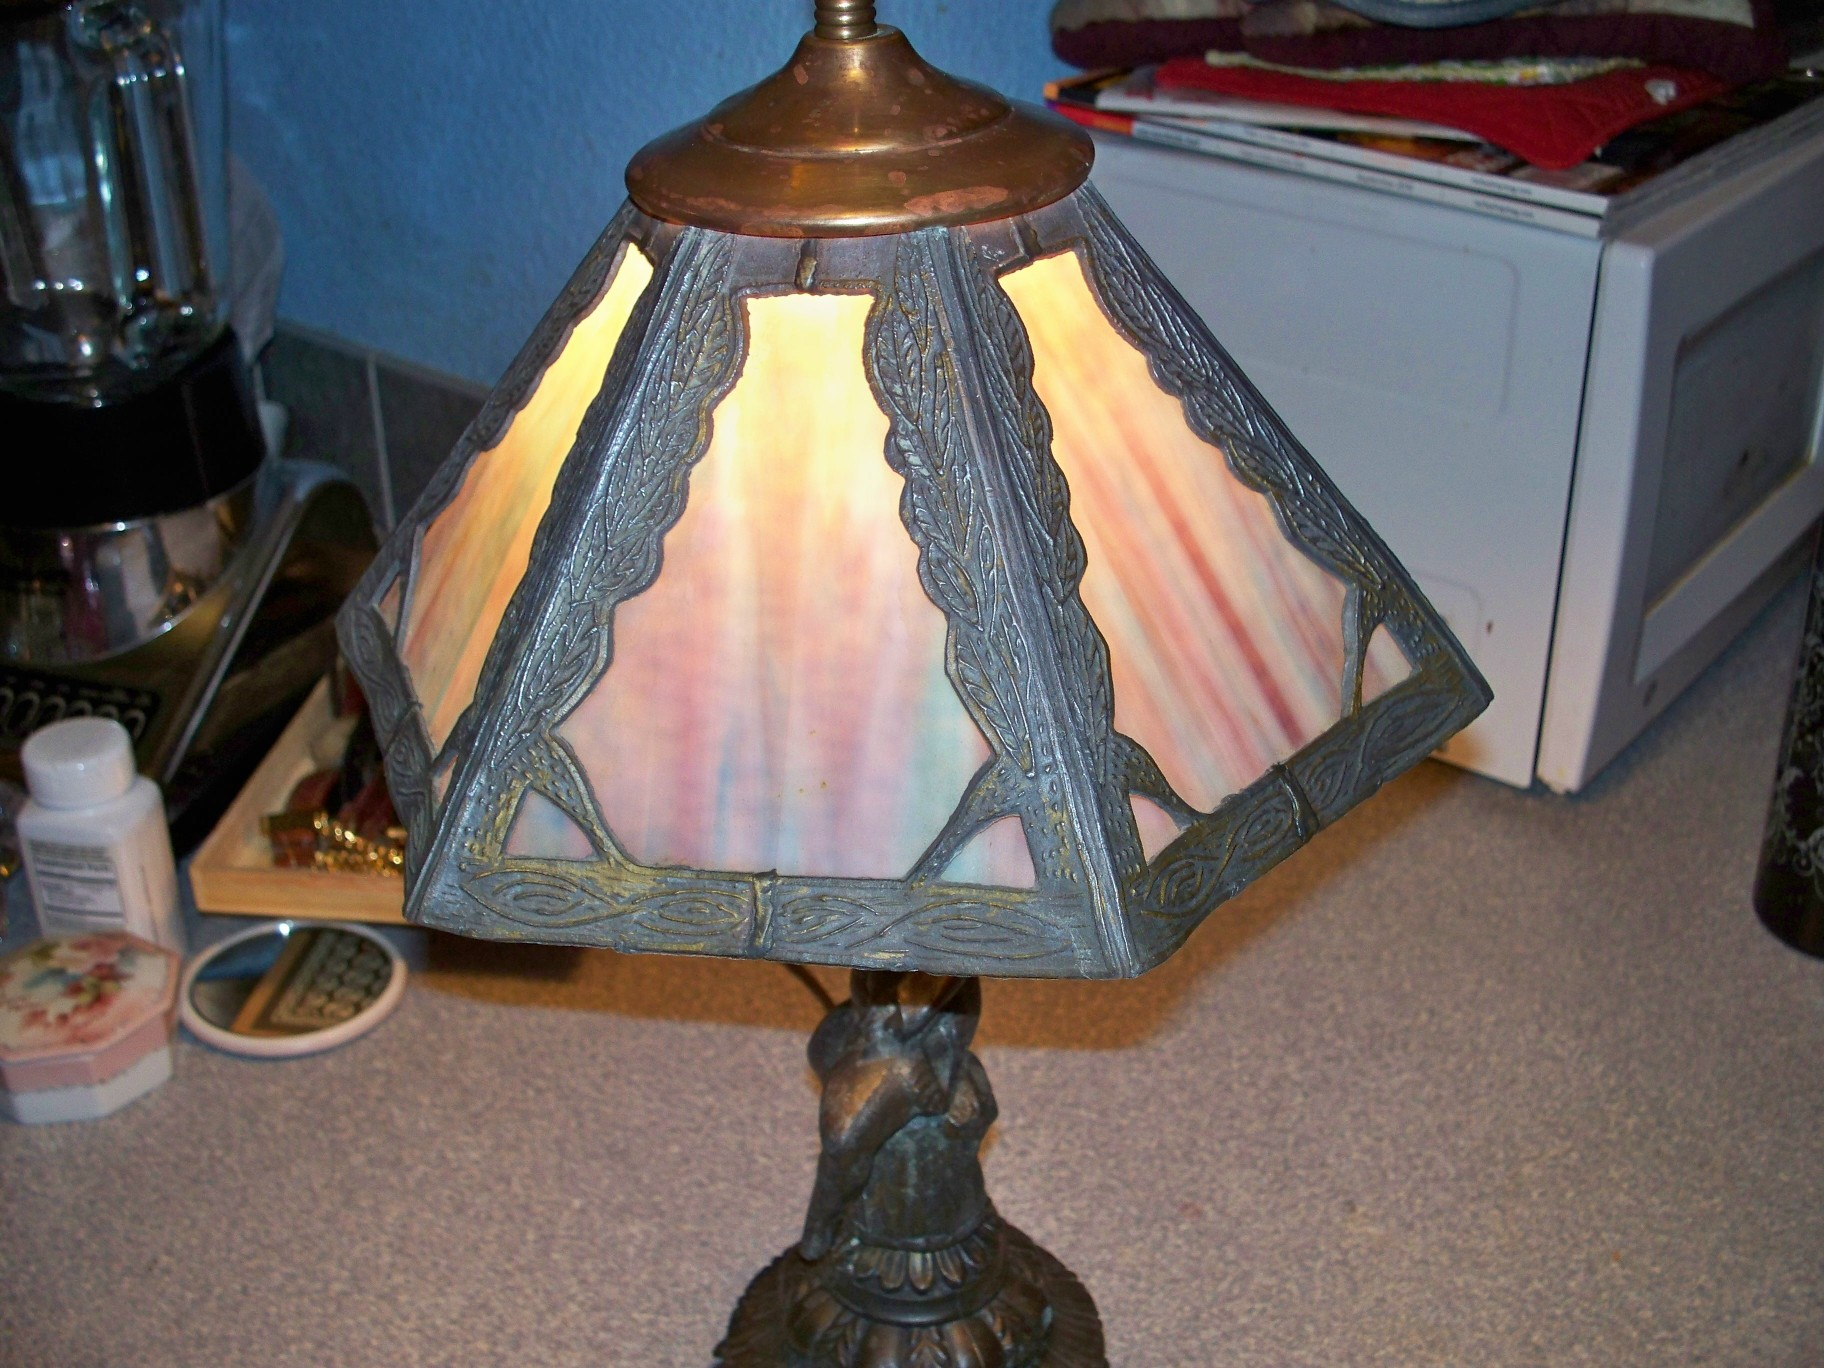 how to fix broken glass lamp shade